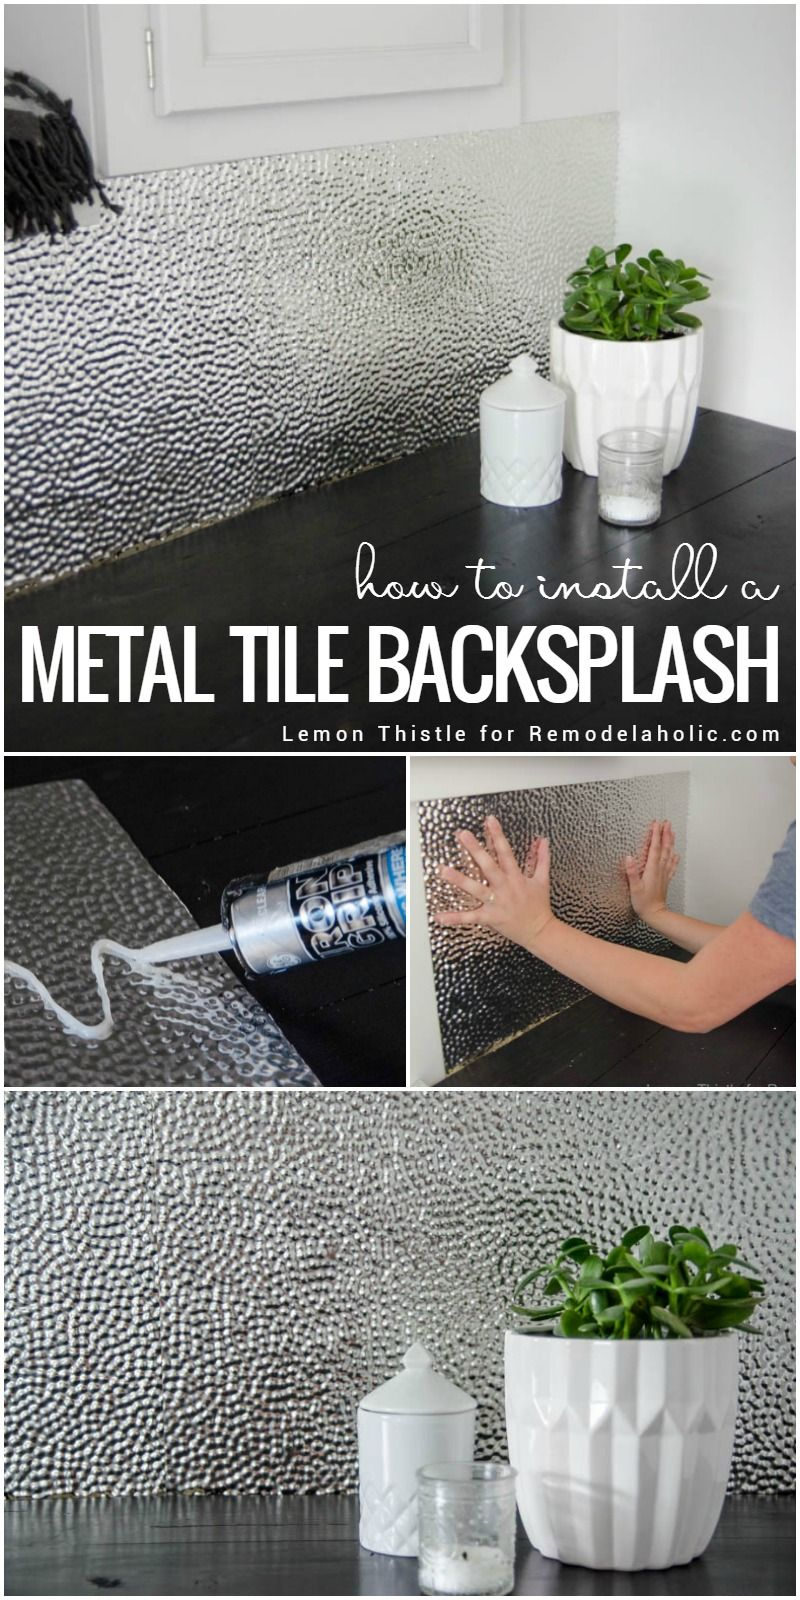 Learn how to install a unique and modern but easy to clean metal learn how to install a unique and modern but easy to clean metal ceiling tile backsplash for a laundry room or kitchen tip its all about using the dailygadgetfo Gallery